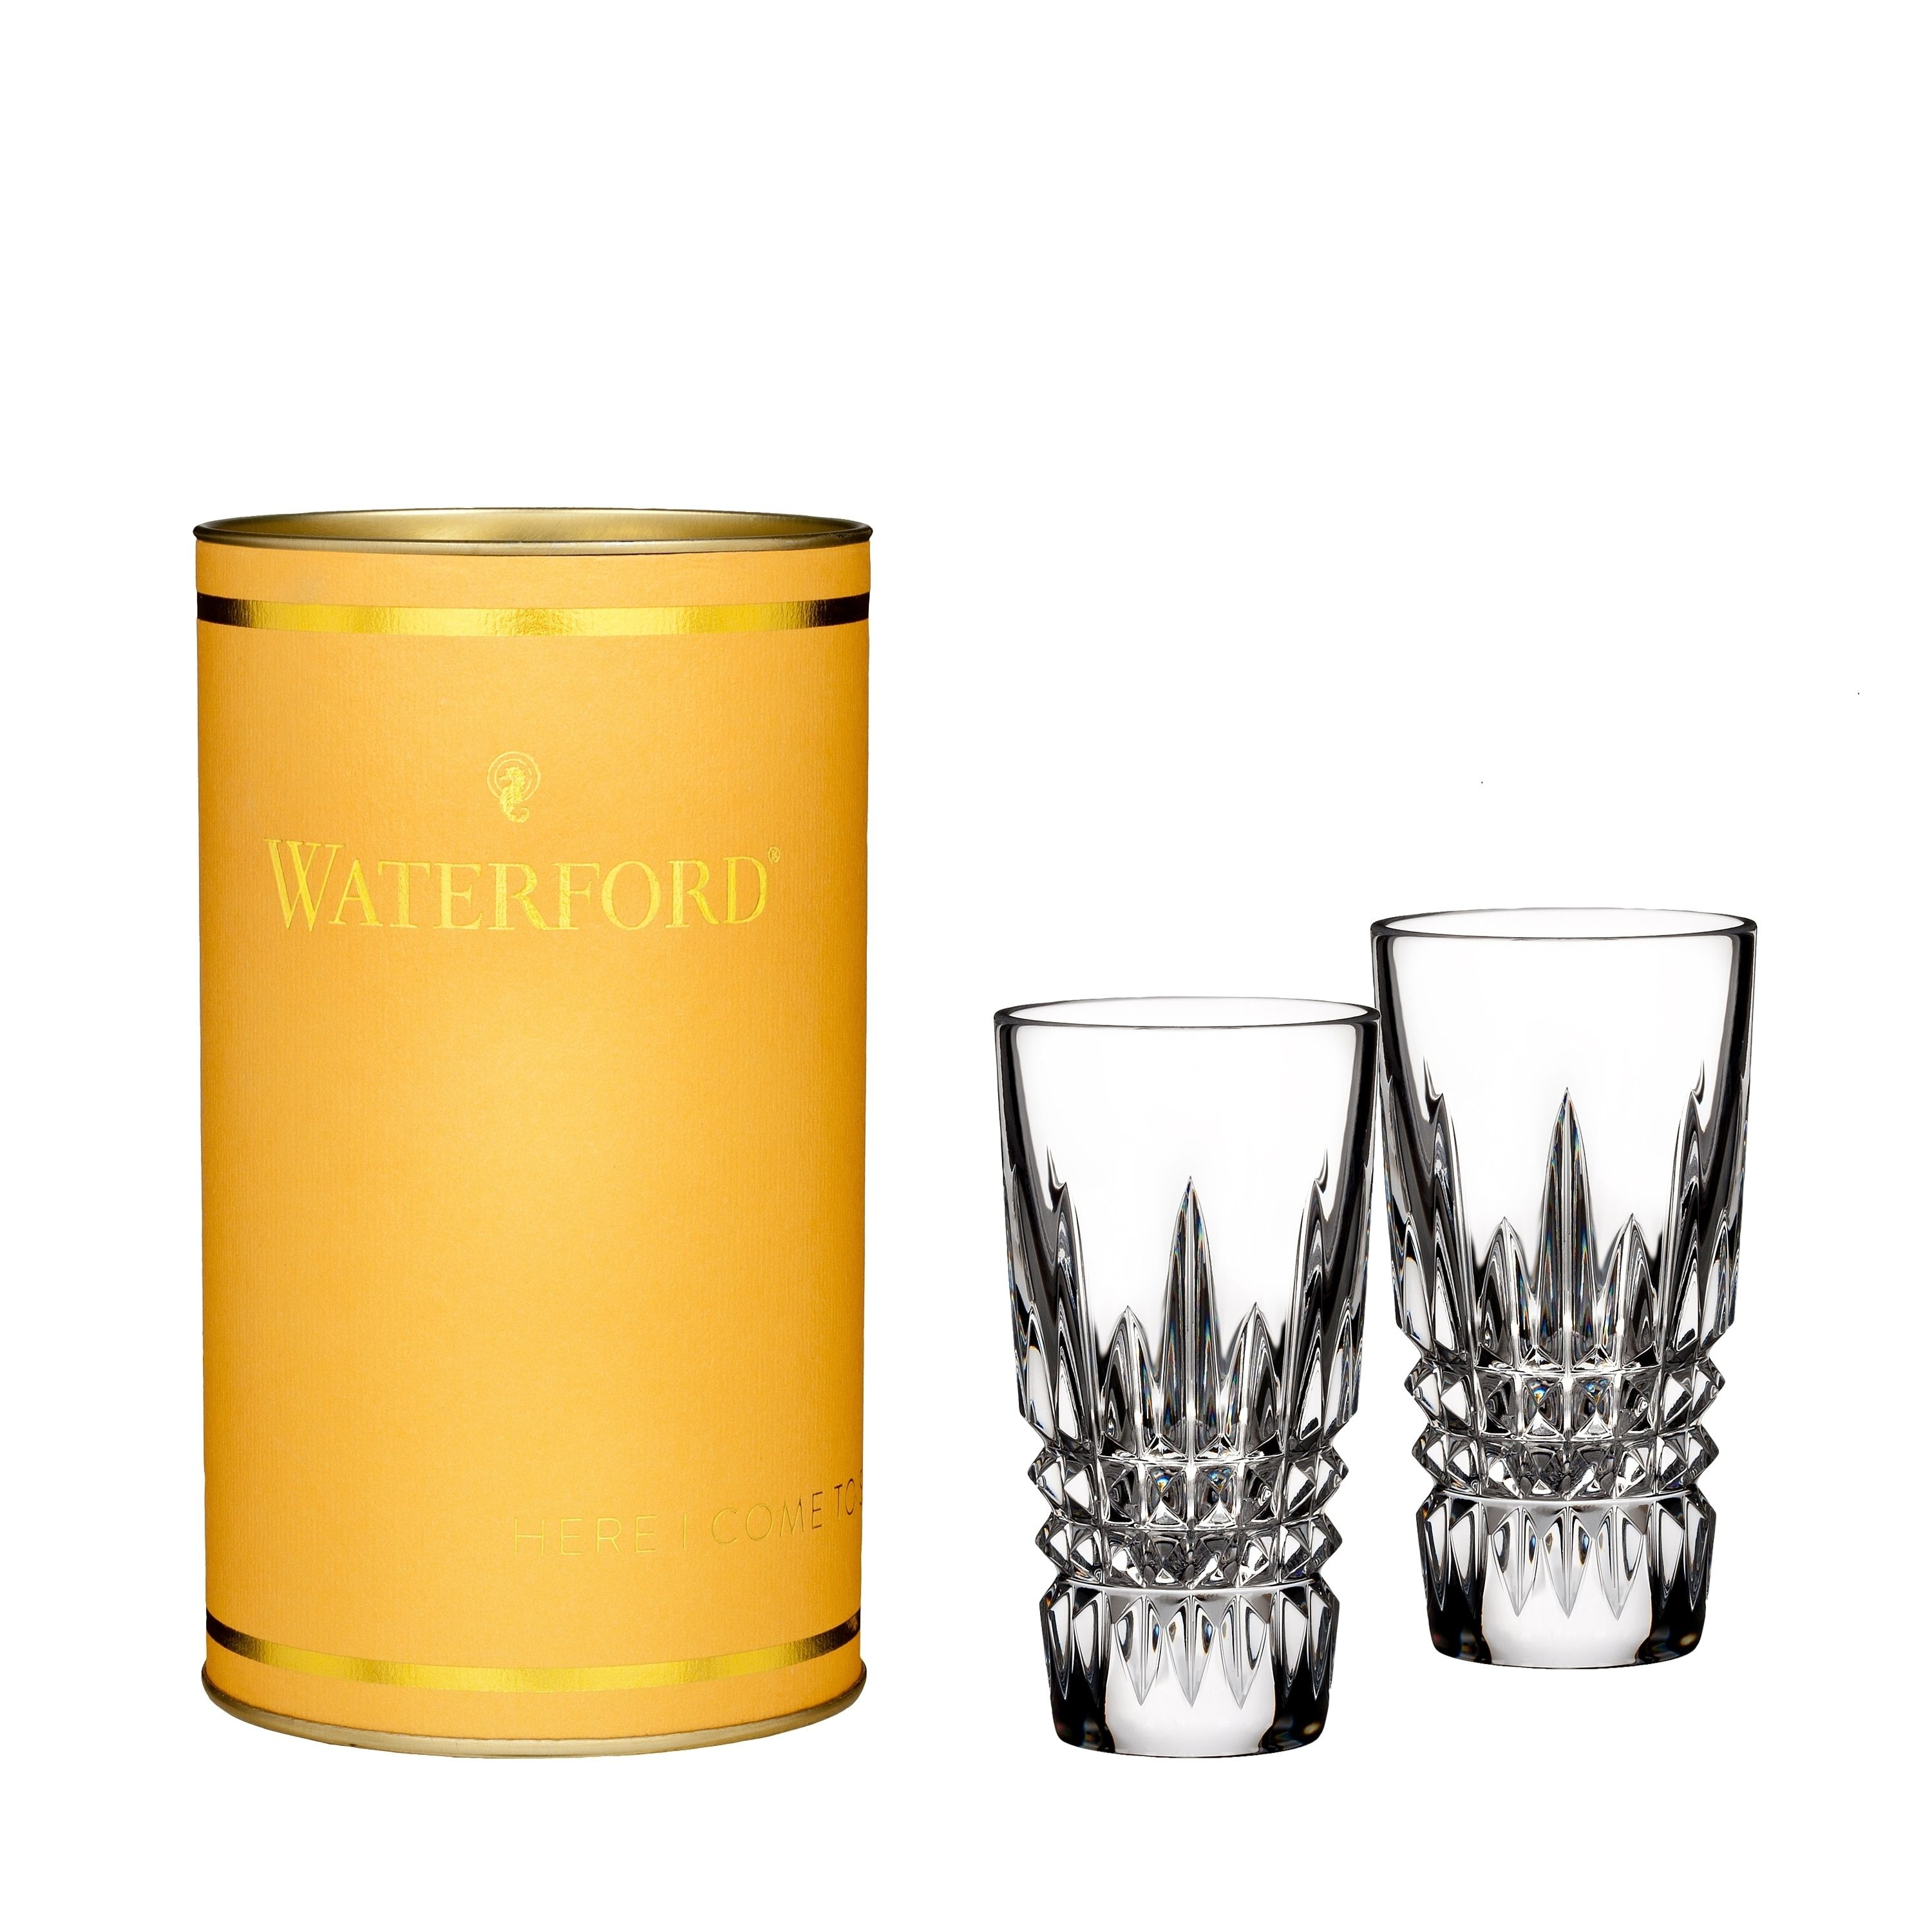 Giftology Clear 2oz Lismore Diamond Shot Glass Set Of 2 Canary Tube Waterford Crystal In 2019 Crystal Shot Glasses Shot Glass Set Shot Glasses